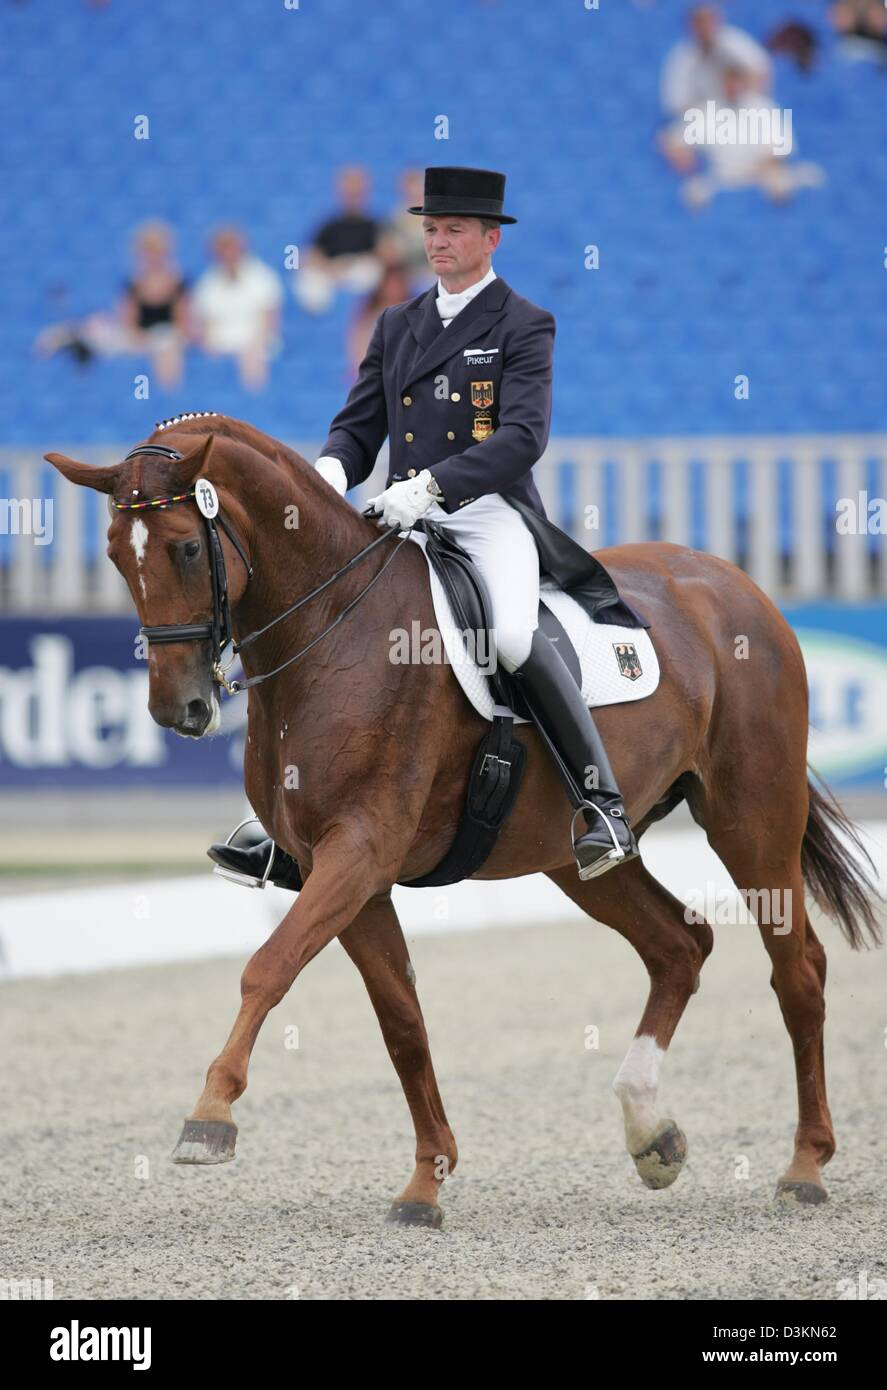 (dpa) - The picture shows German equestrian Hubertus Schmidt on Wansuela Suerte prior to his exercise at the dressage - Stock Image